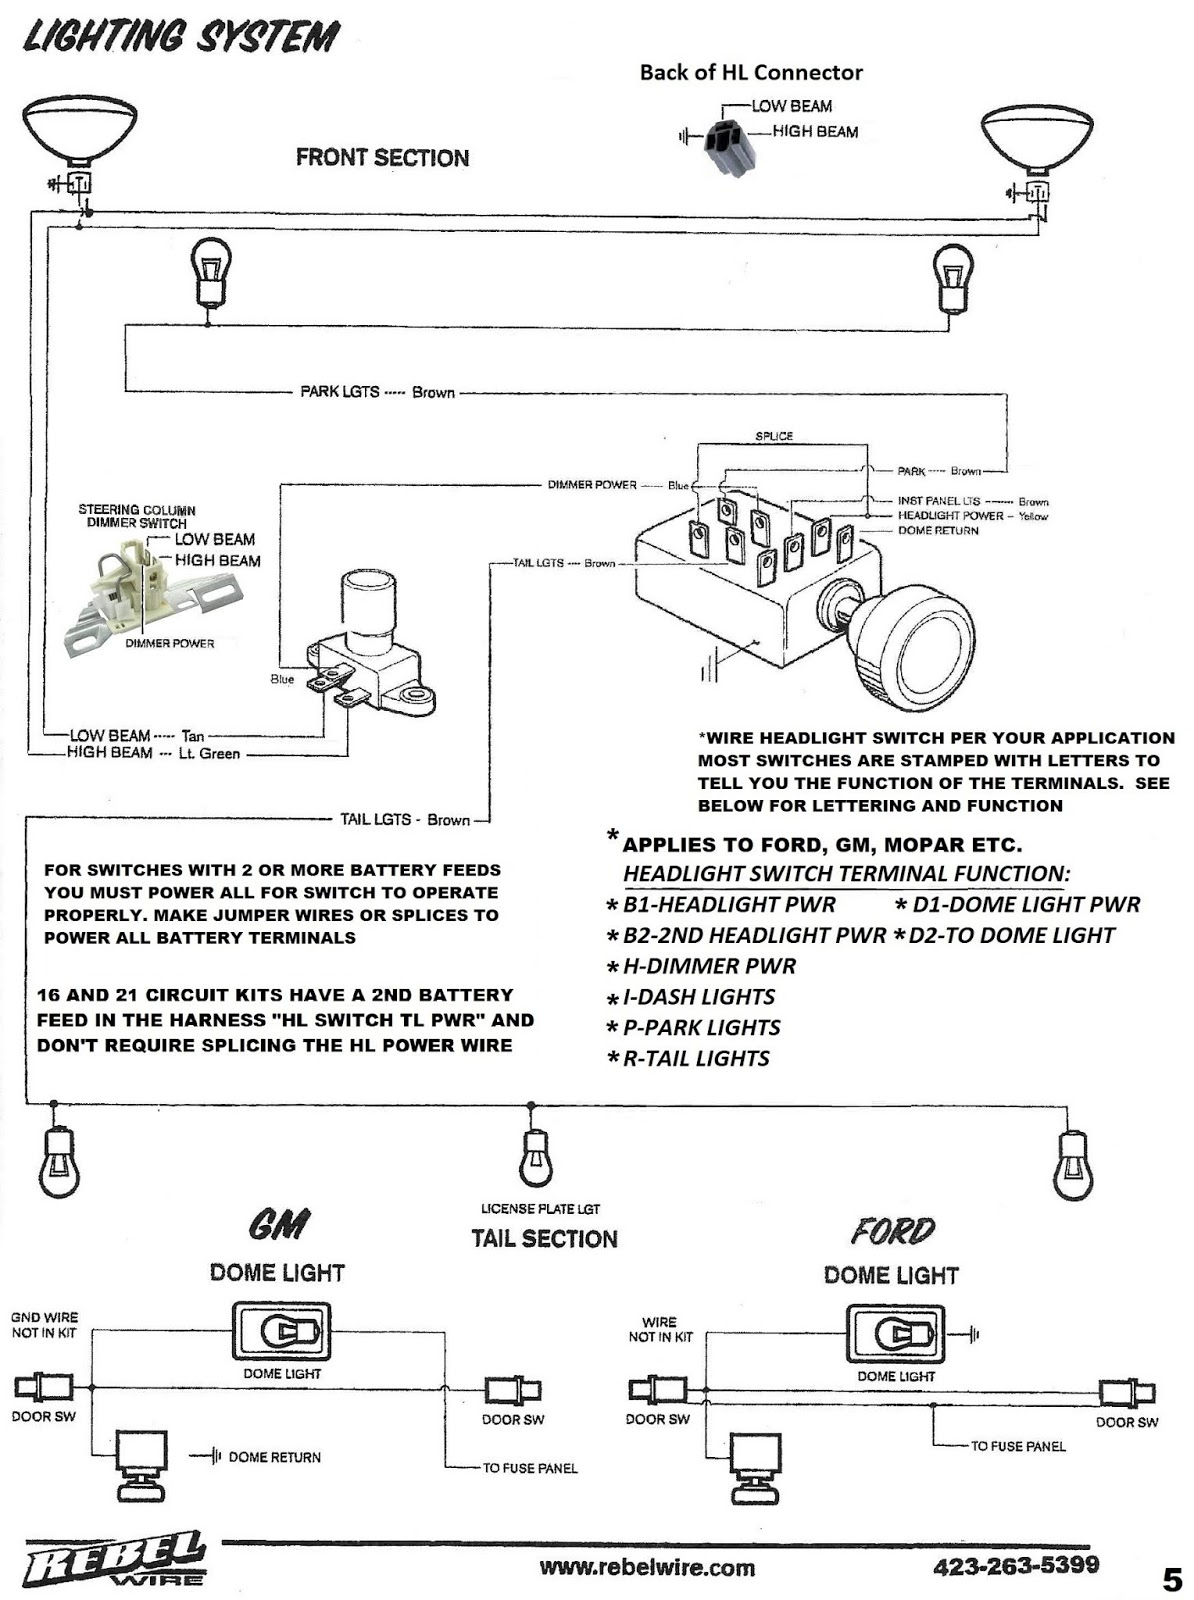 hight resolution of vp instrument cluster help asapl3vndashwiringjpg wiring diagramdome light wiring diagram together with chevy dome light wiring